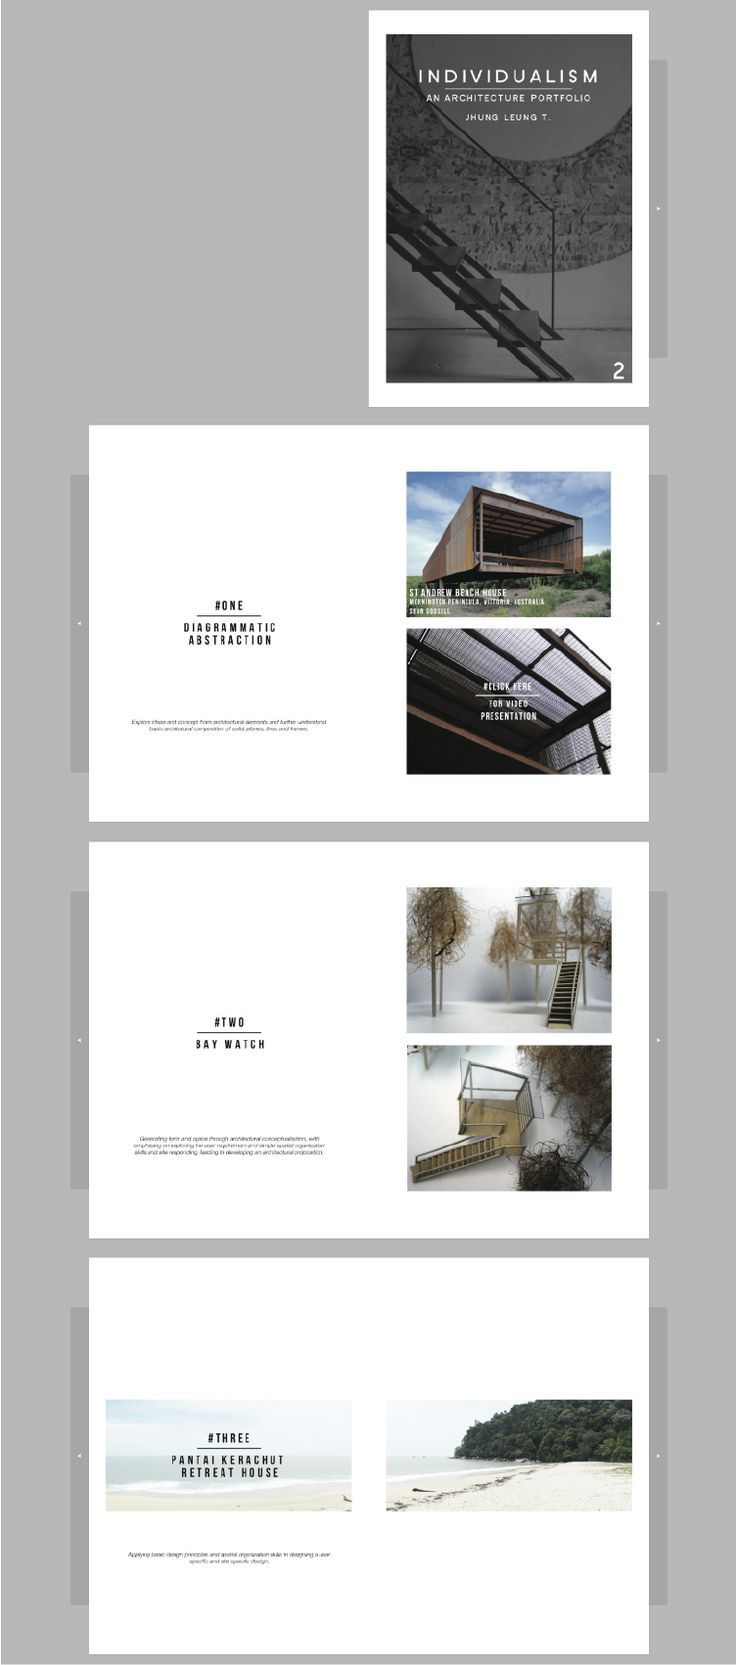 architecture portfolio by jhung leung it features simple layouts nicely organized compositions that can inspire anyone who is trying to make a simple - Interior Design Portfolio Ideas